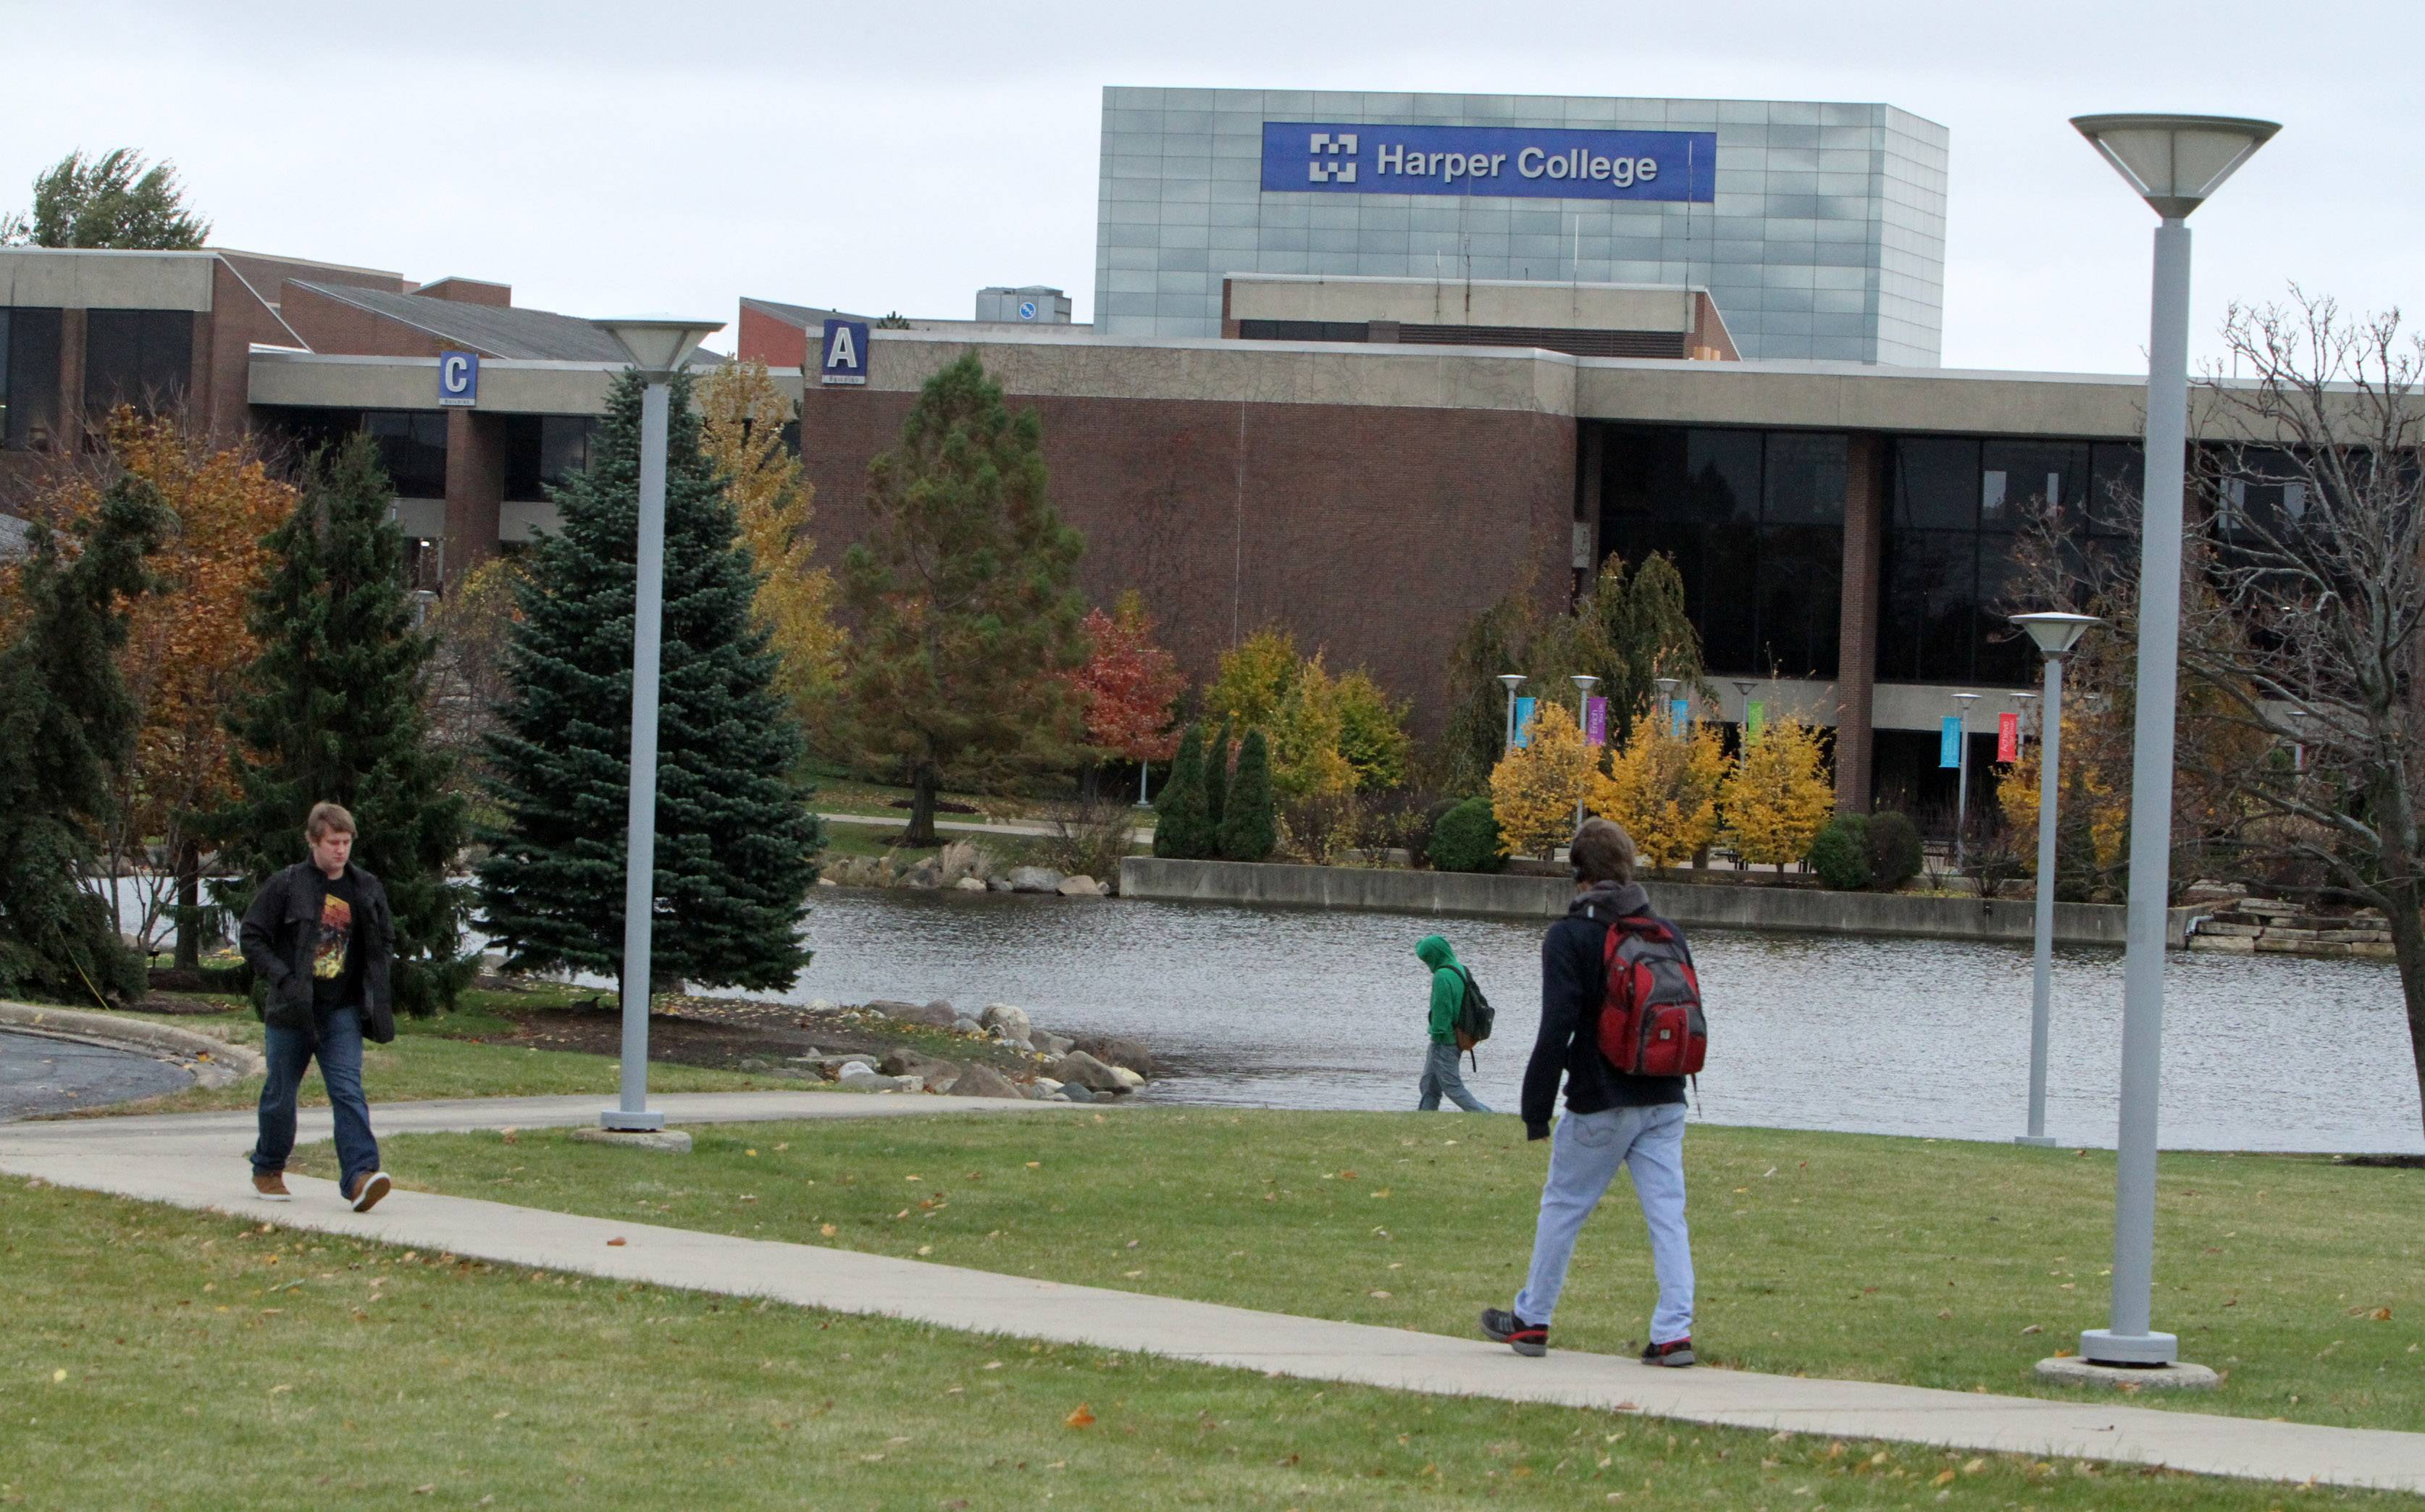 Harper College has prepared a balanced budget for fiscal year 2015 that calls for a slight decrease in the education fund and a small bump in tuition.